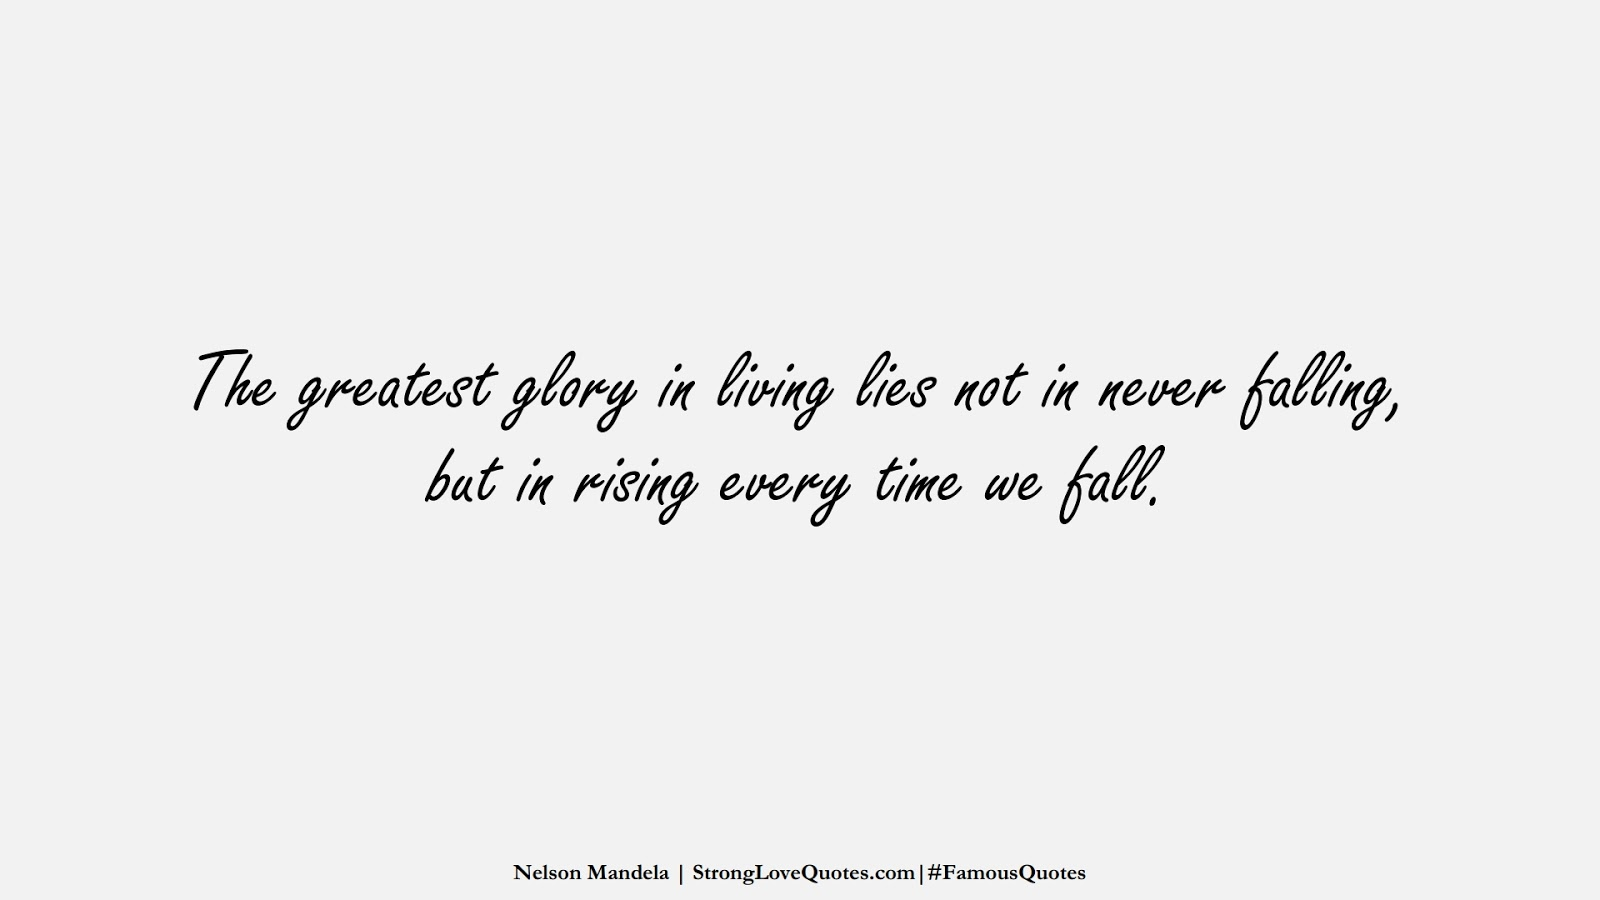 The greatest glory in living lies not in never falling, but in rising every time we fall. (Nelson Mandela);  #FamousQuotes